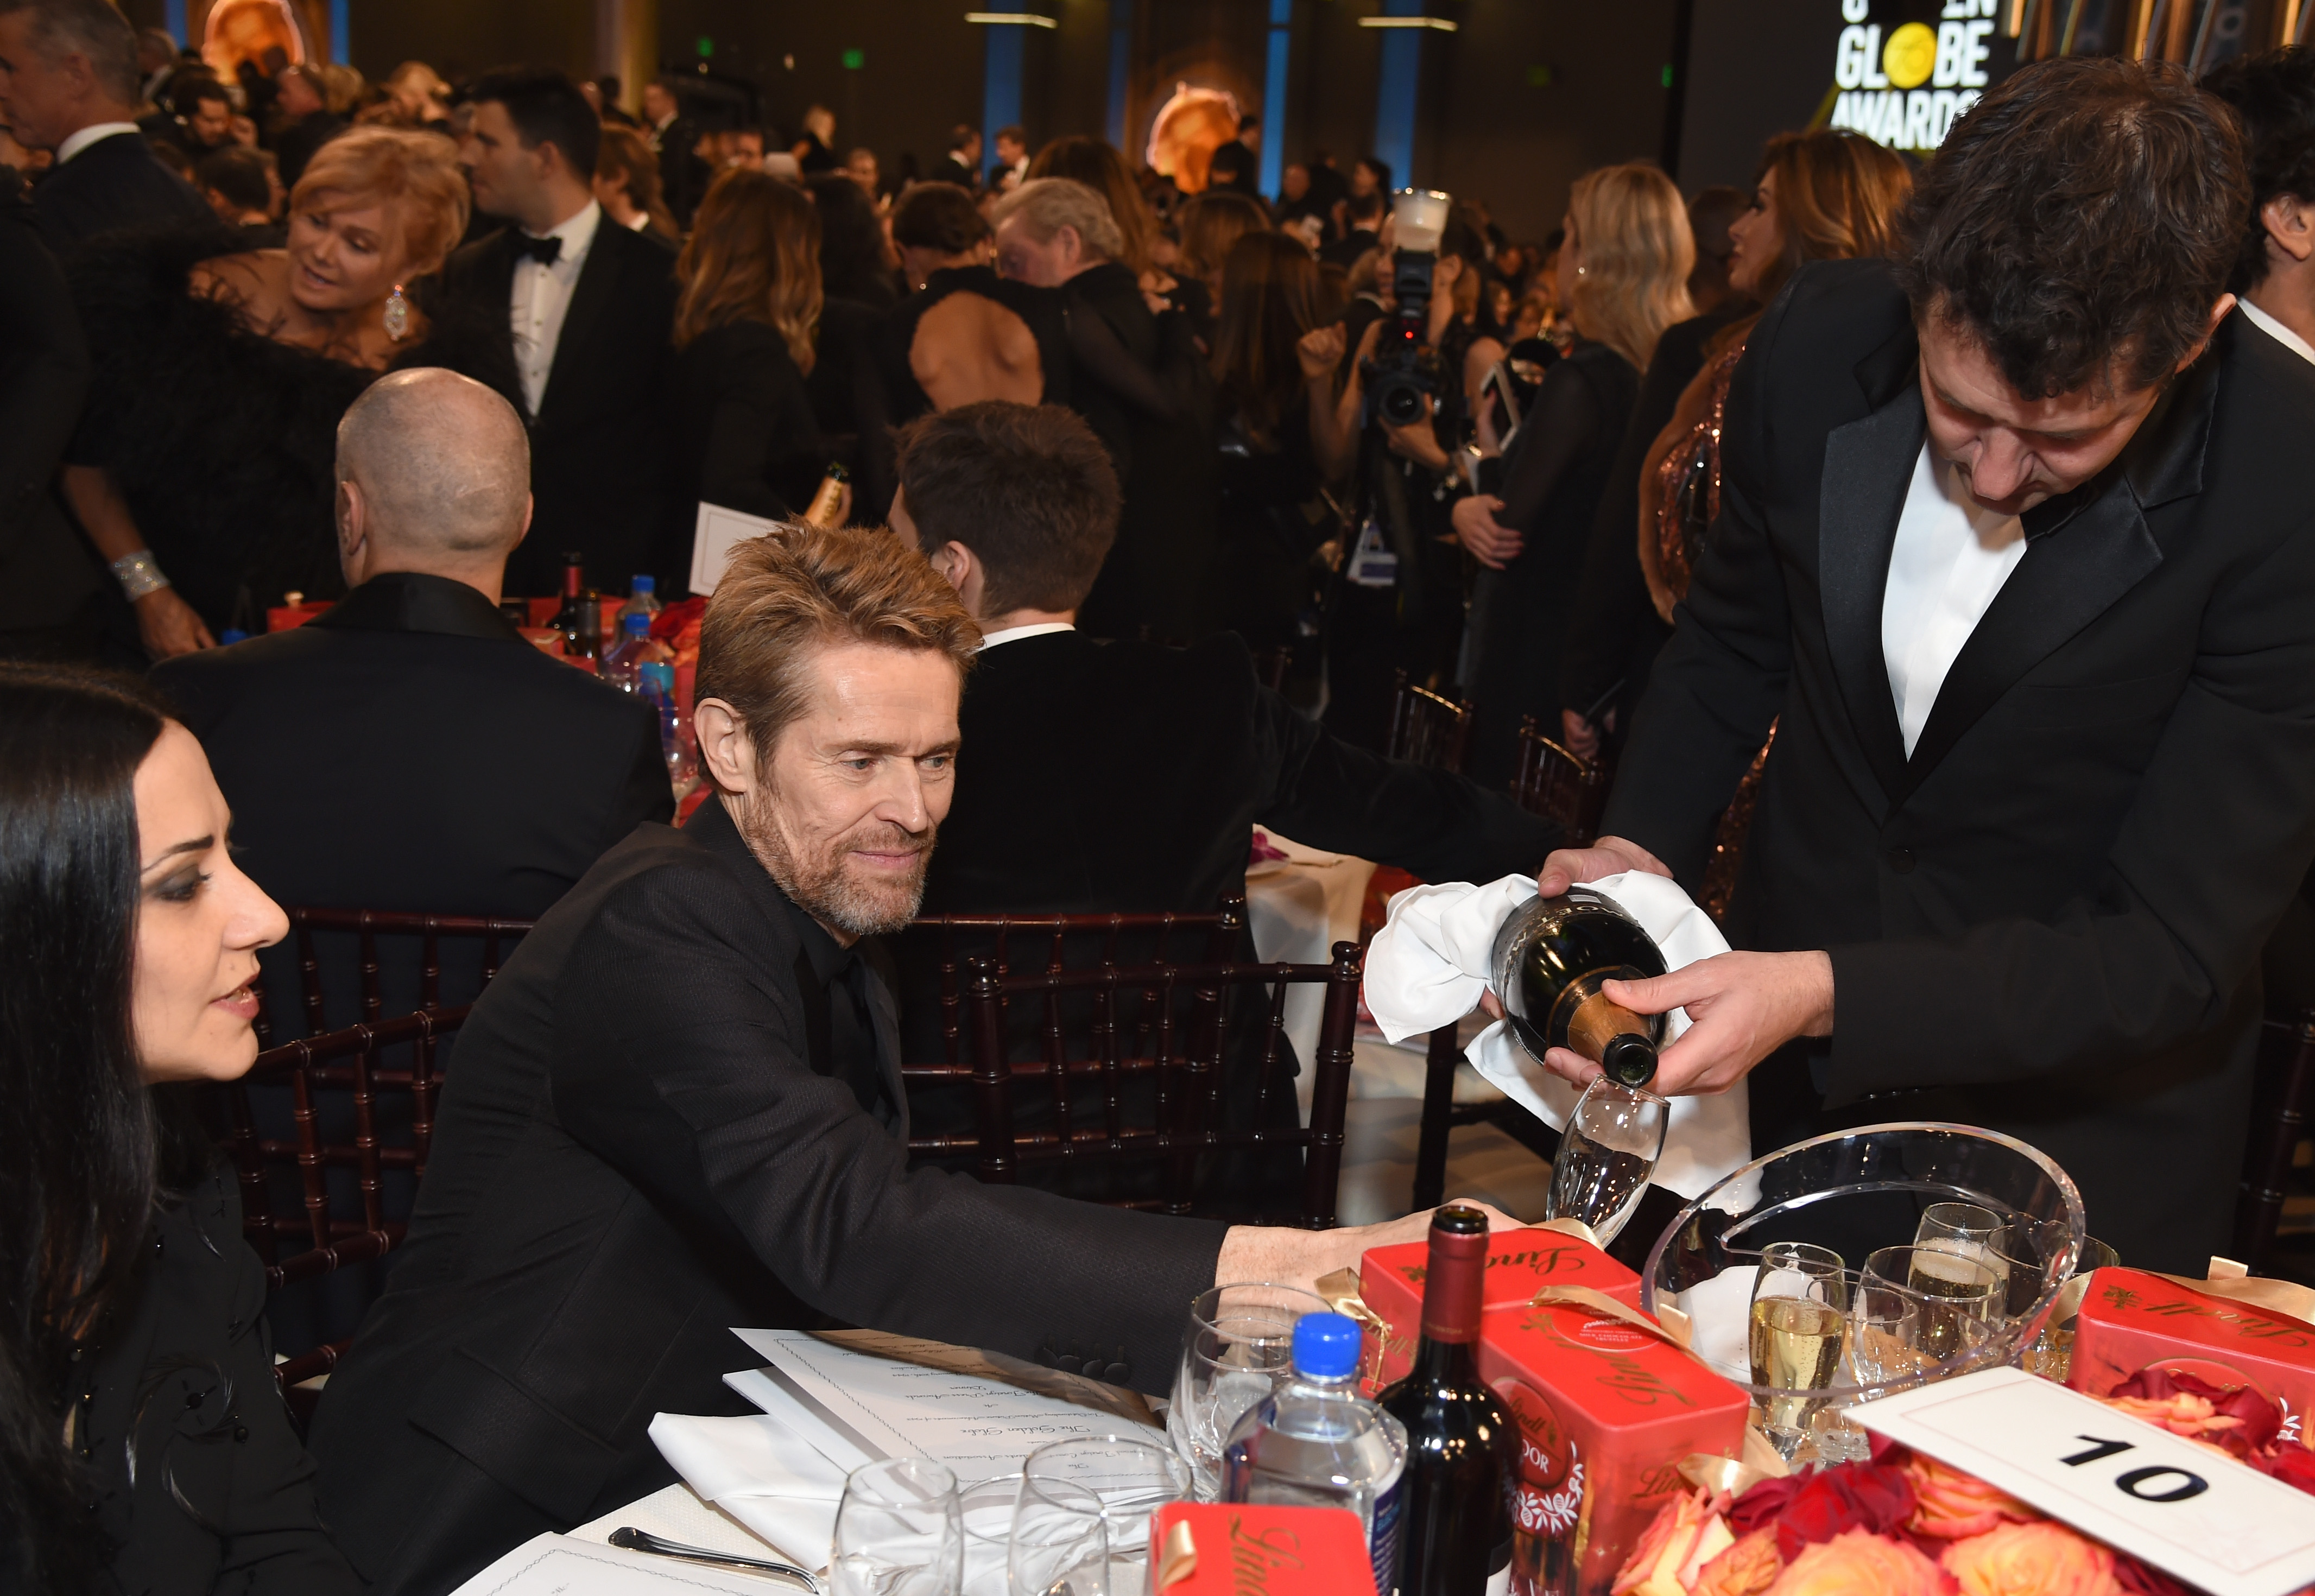 BEVERLY HILLS, CA - JANUARY 07:  Actor Willem Dafoe celebrates The 75th Annual Golden Globe Awards with Moet & Chandon at The Beverly Hilton Hotel on January 7, 2018 in Beverly Hills, California.  (Photo by Michael Kovac/Getty Images for Moet & Chandon)